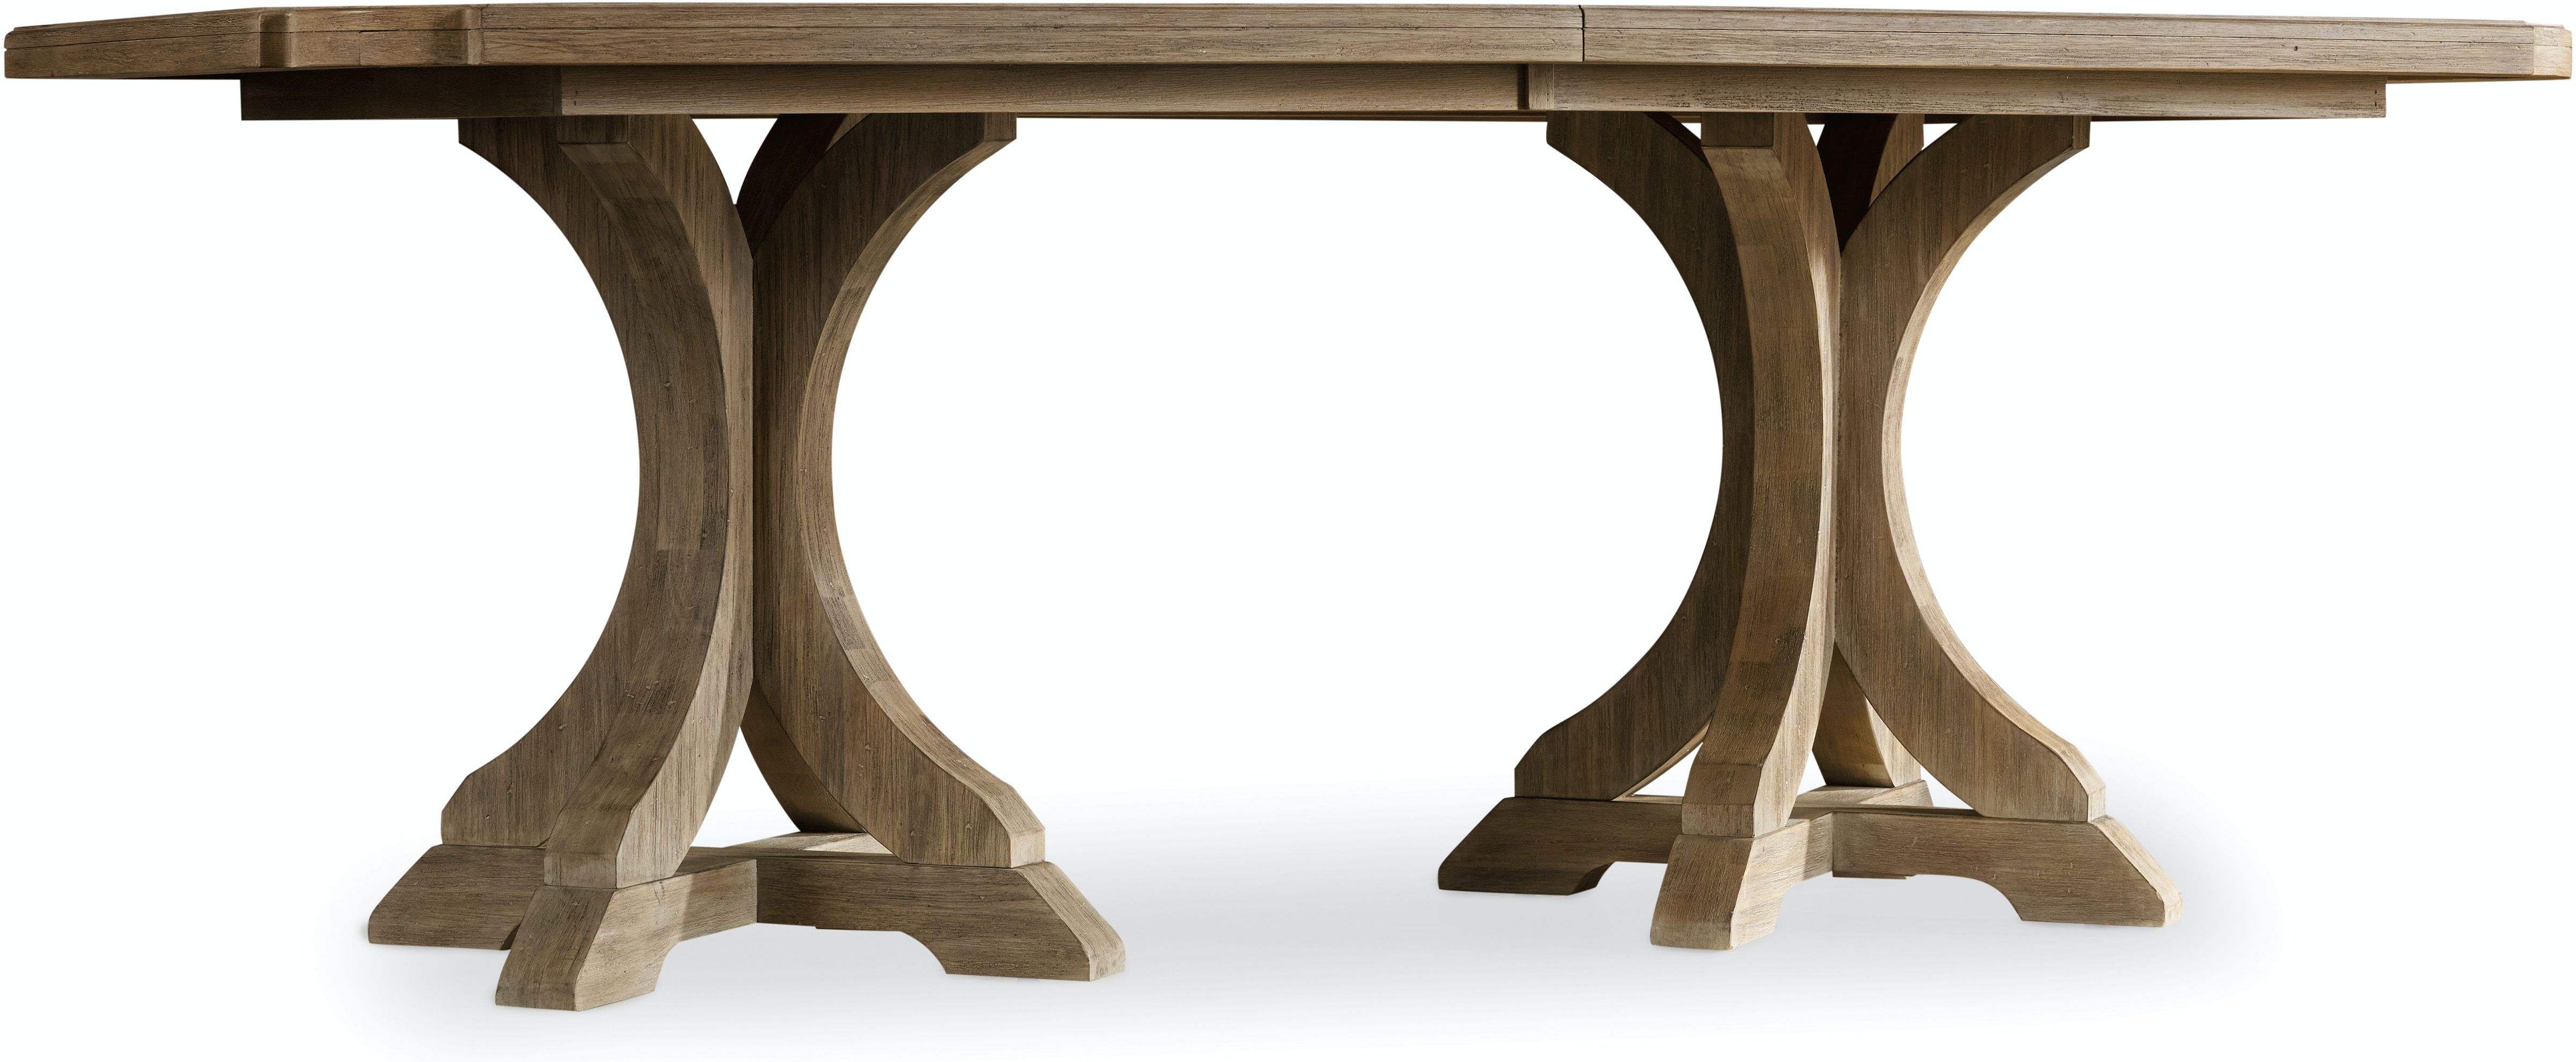 Wood Dining Tables With Leaves hooker furniture dining room corsica rectangle pedestal dining